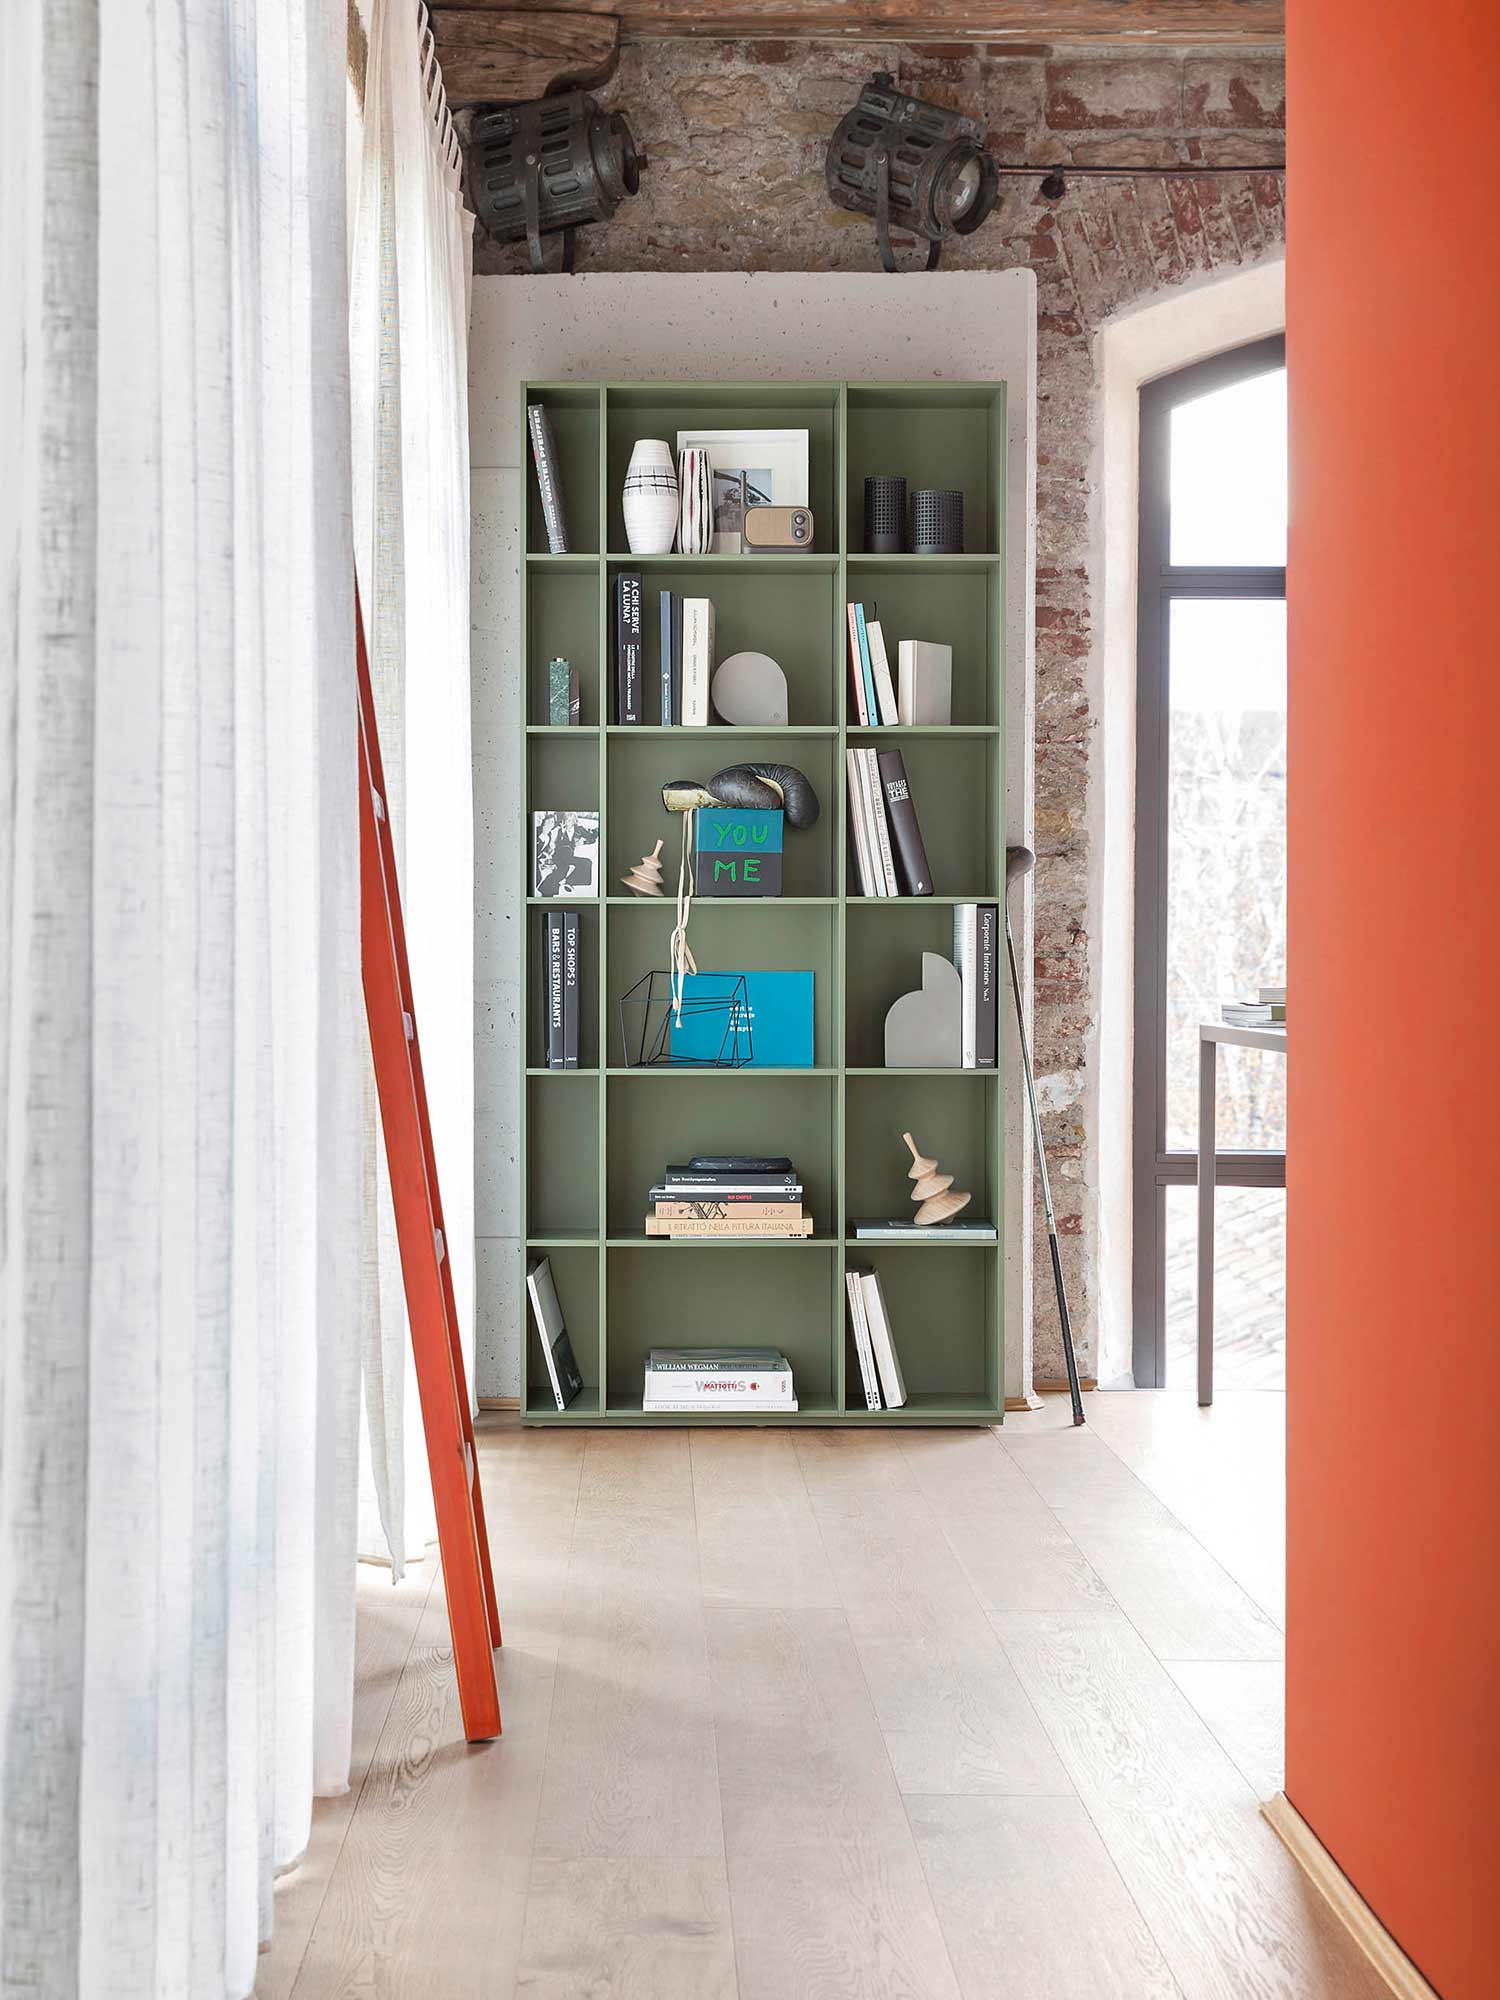 Storage solutions for modern living, design by Hubble